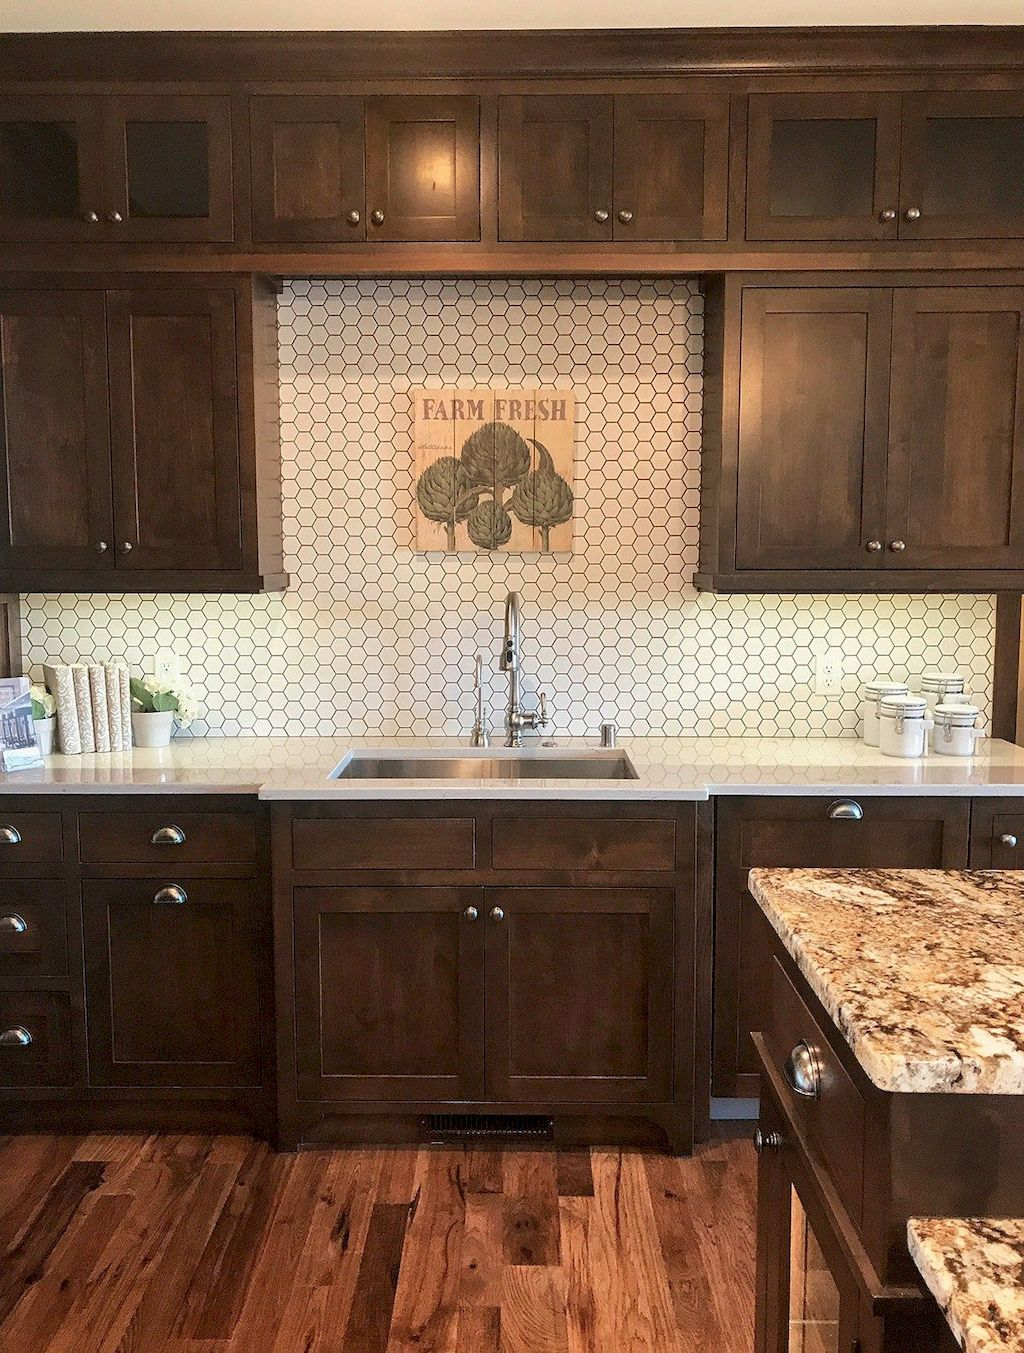 Wood Kitchen Cabinets An Investment To Awesome Kitchen Home To Z Dark Wood Kitchen Cabinets Backsplash With Dark Cabinets Brown Kitchen Cabinets